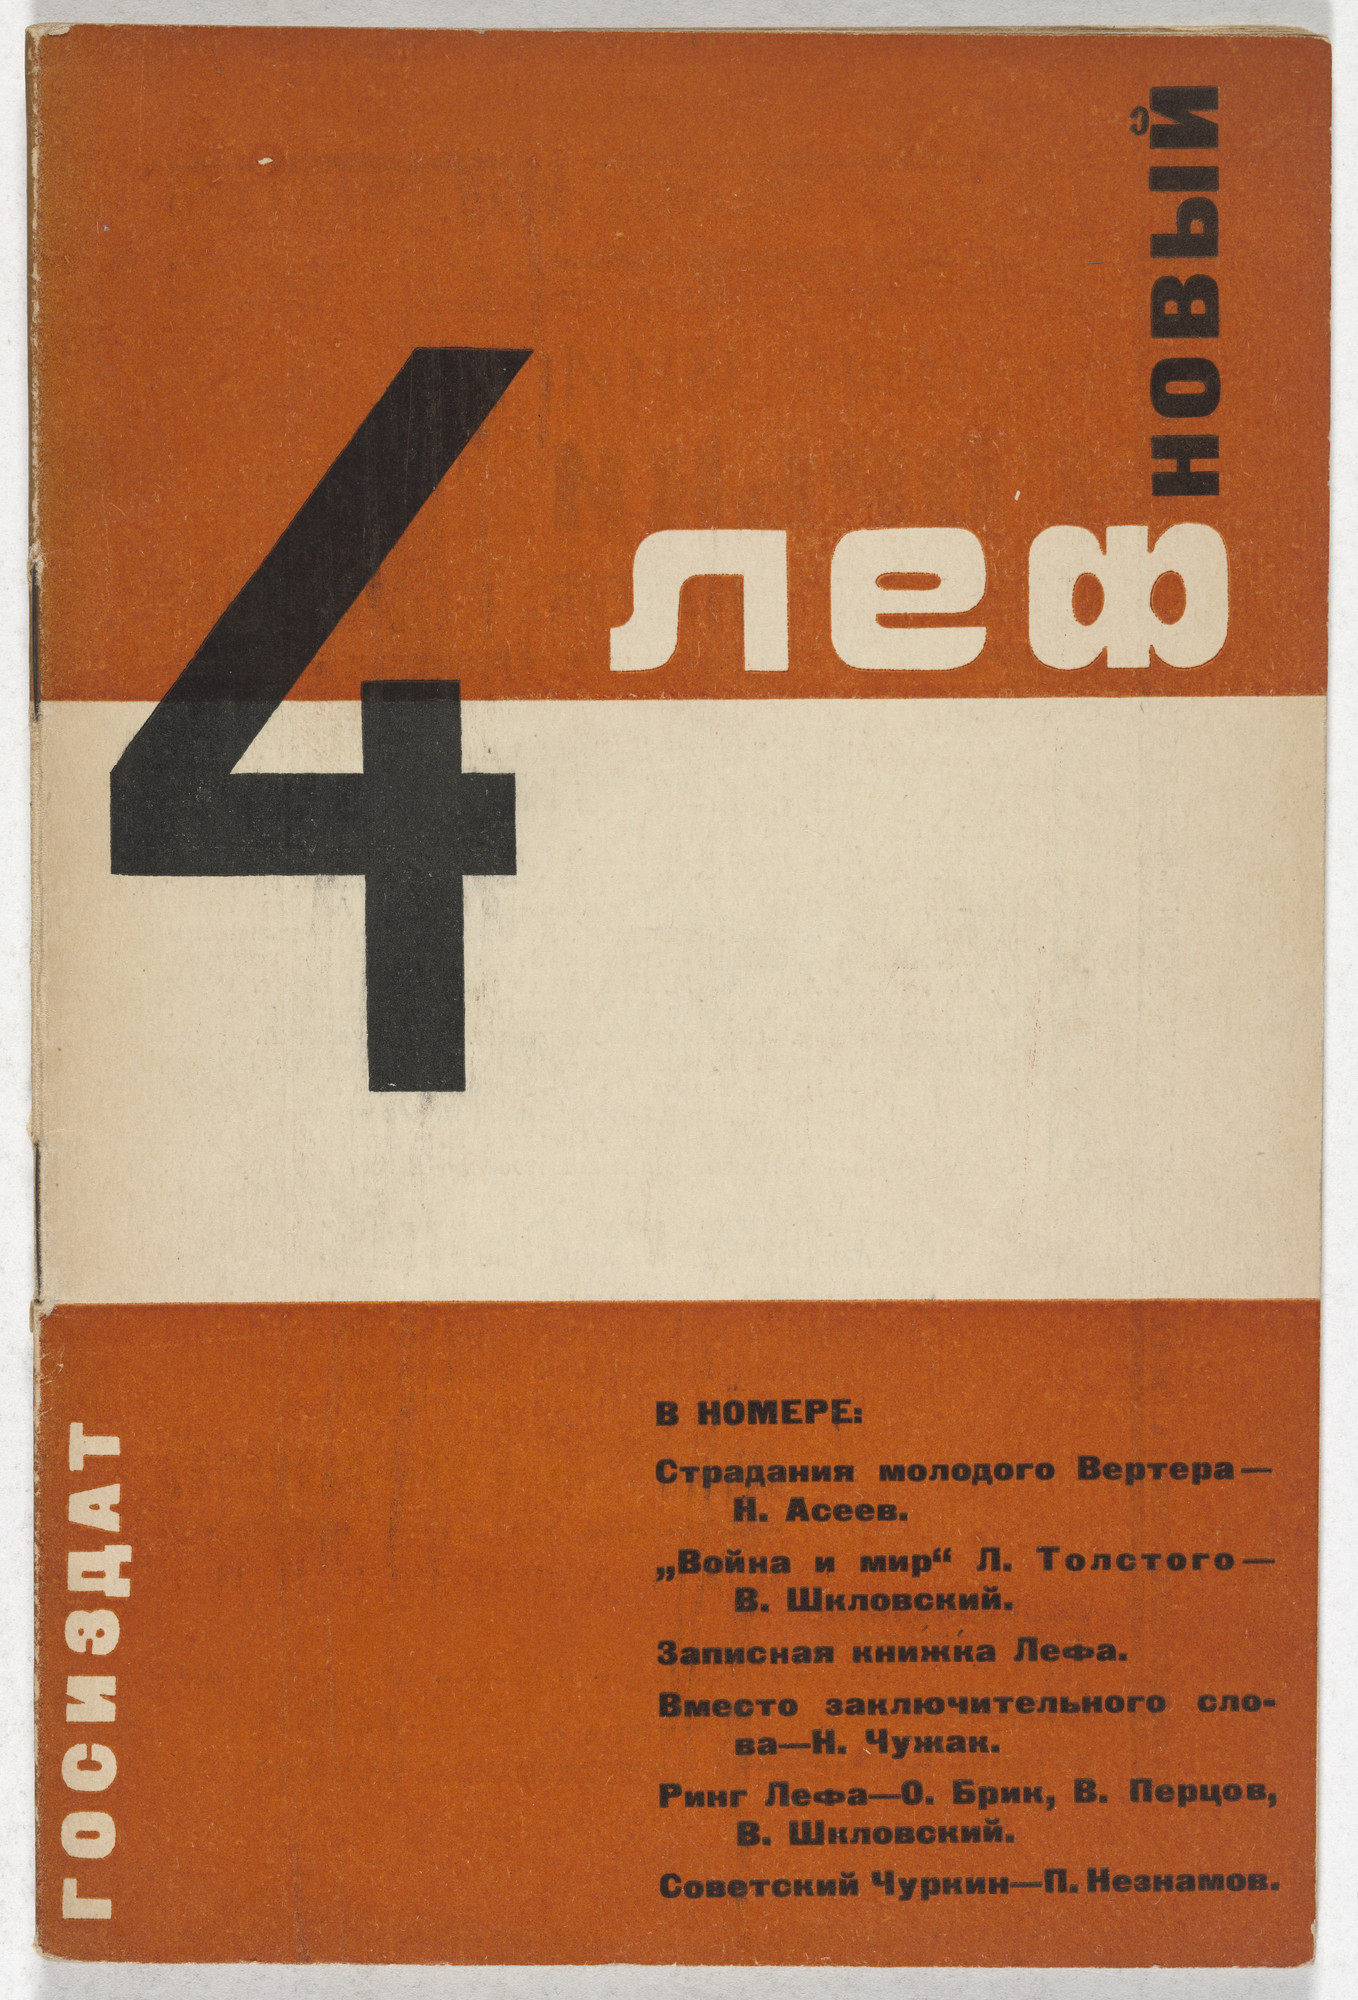 Aleksandr Rodchenko. Novyi LEF. Zhurnal levogo fronta iskusstv (New LEF: Journal of the Left Front of the Arts), no. 4. 1928